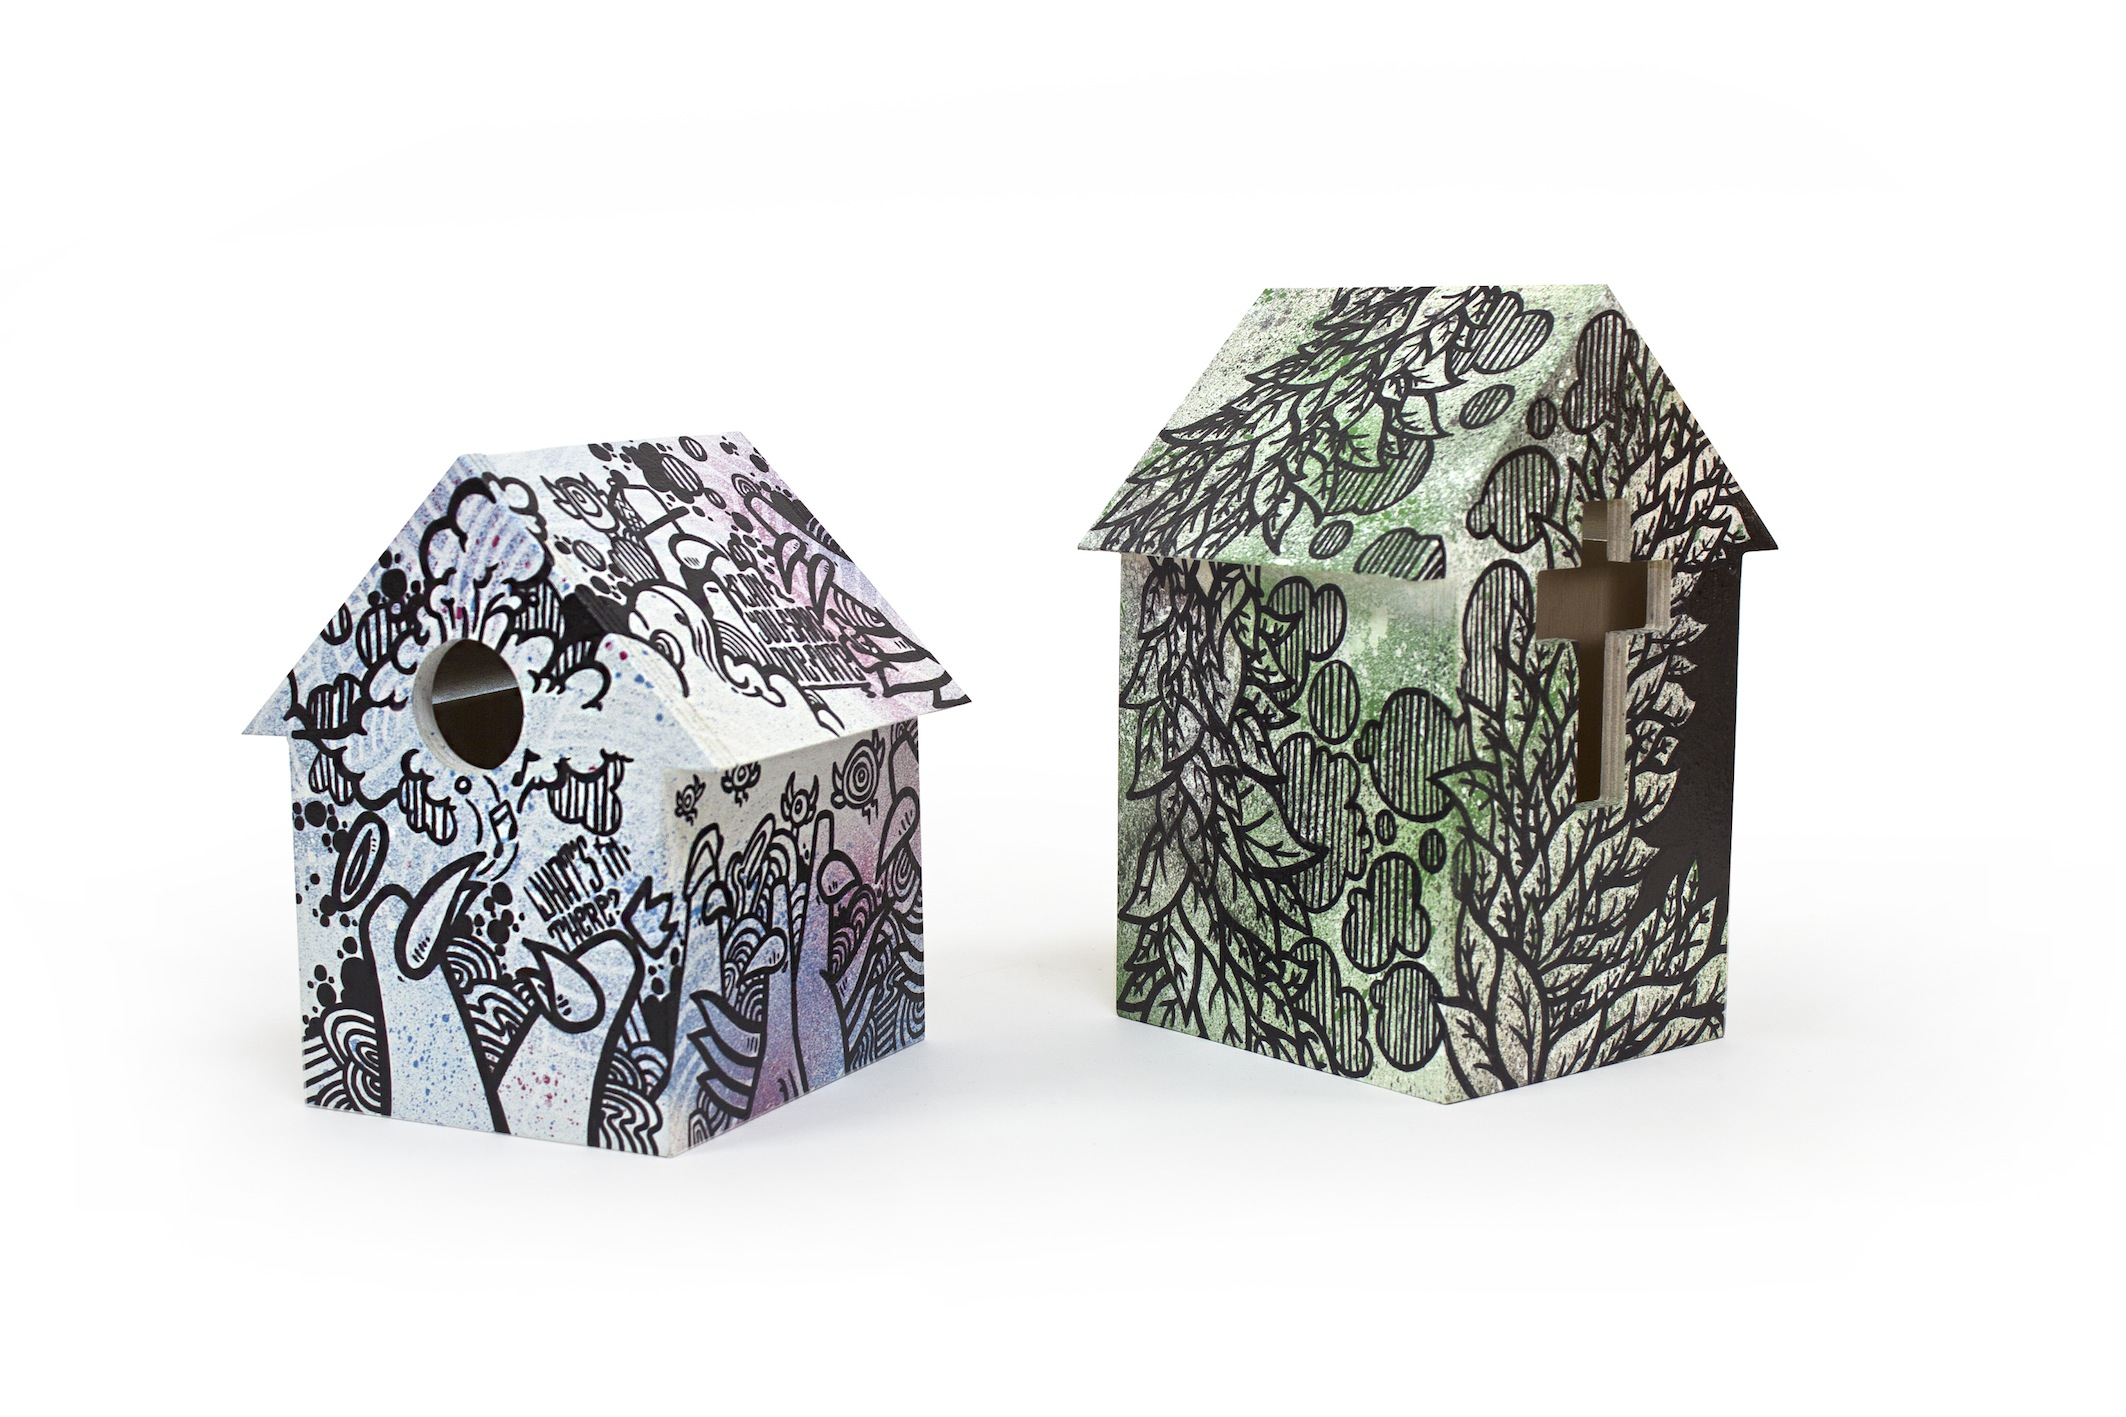 birdhouse graphic design